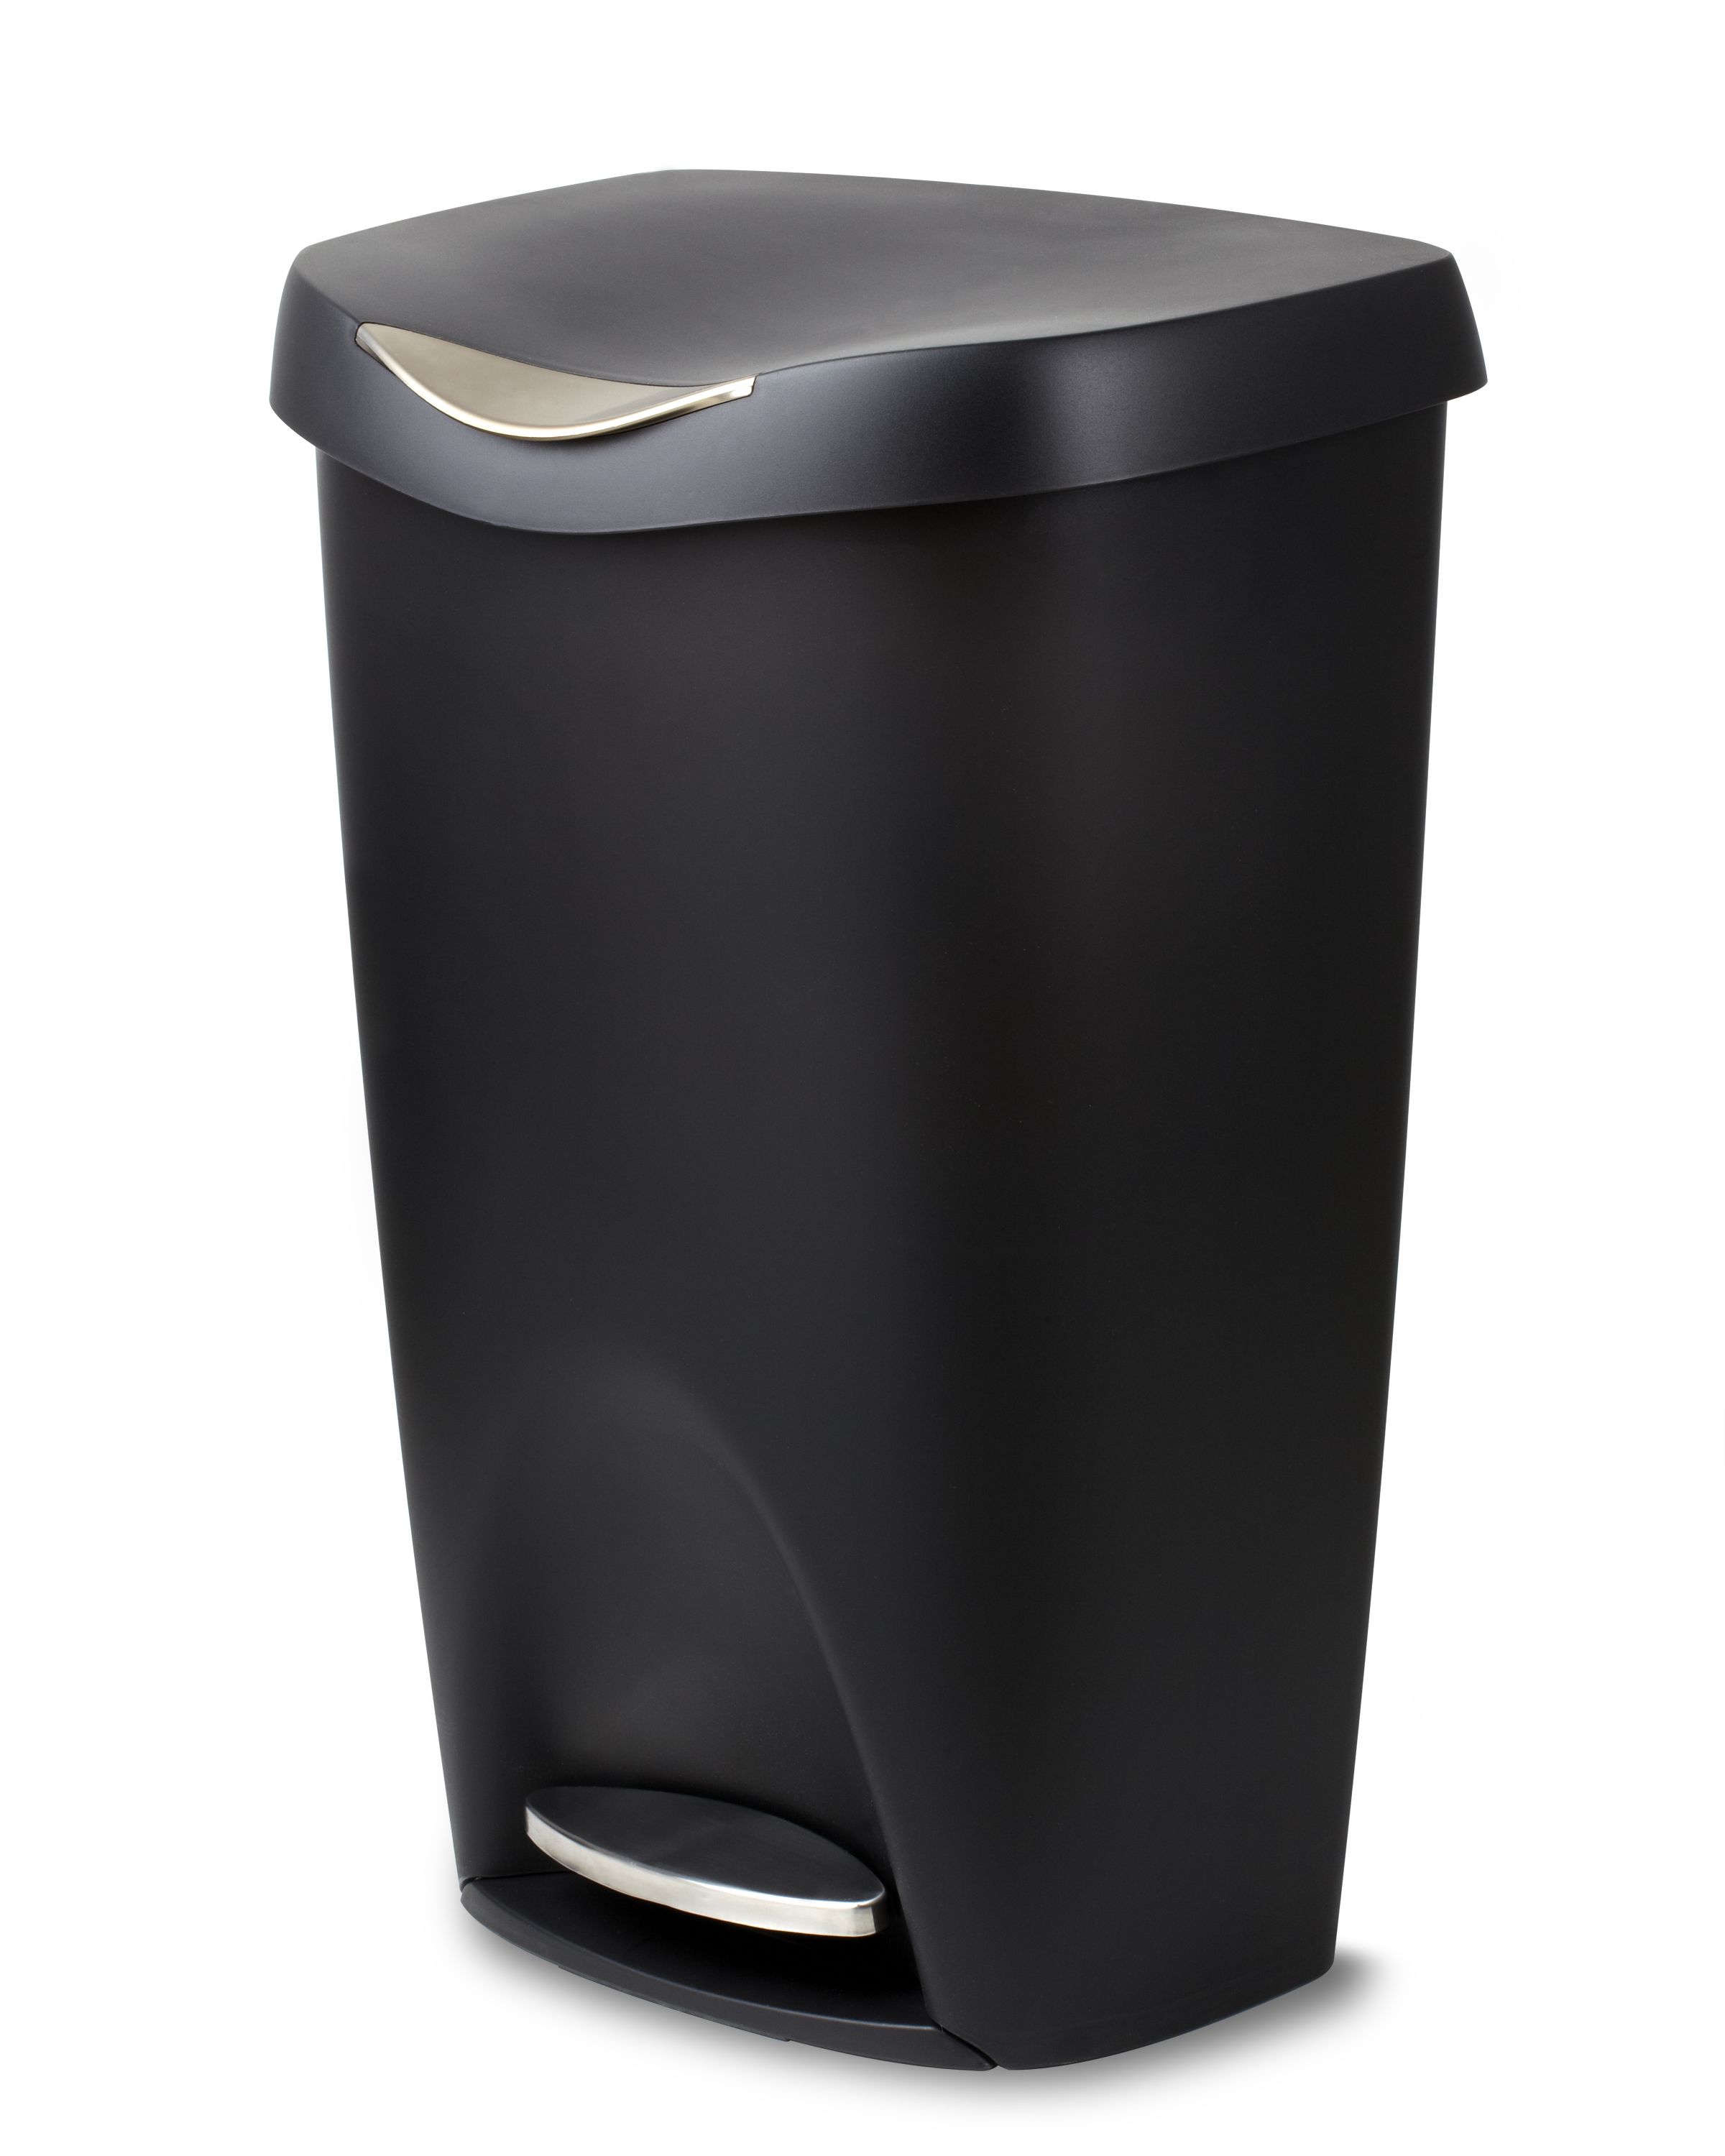 Charmant Umbra Brim Large Kitchen Trash Can With Stainless Steel Foot Pedal U2013  Stylish And Durable 13